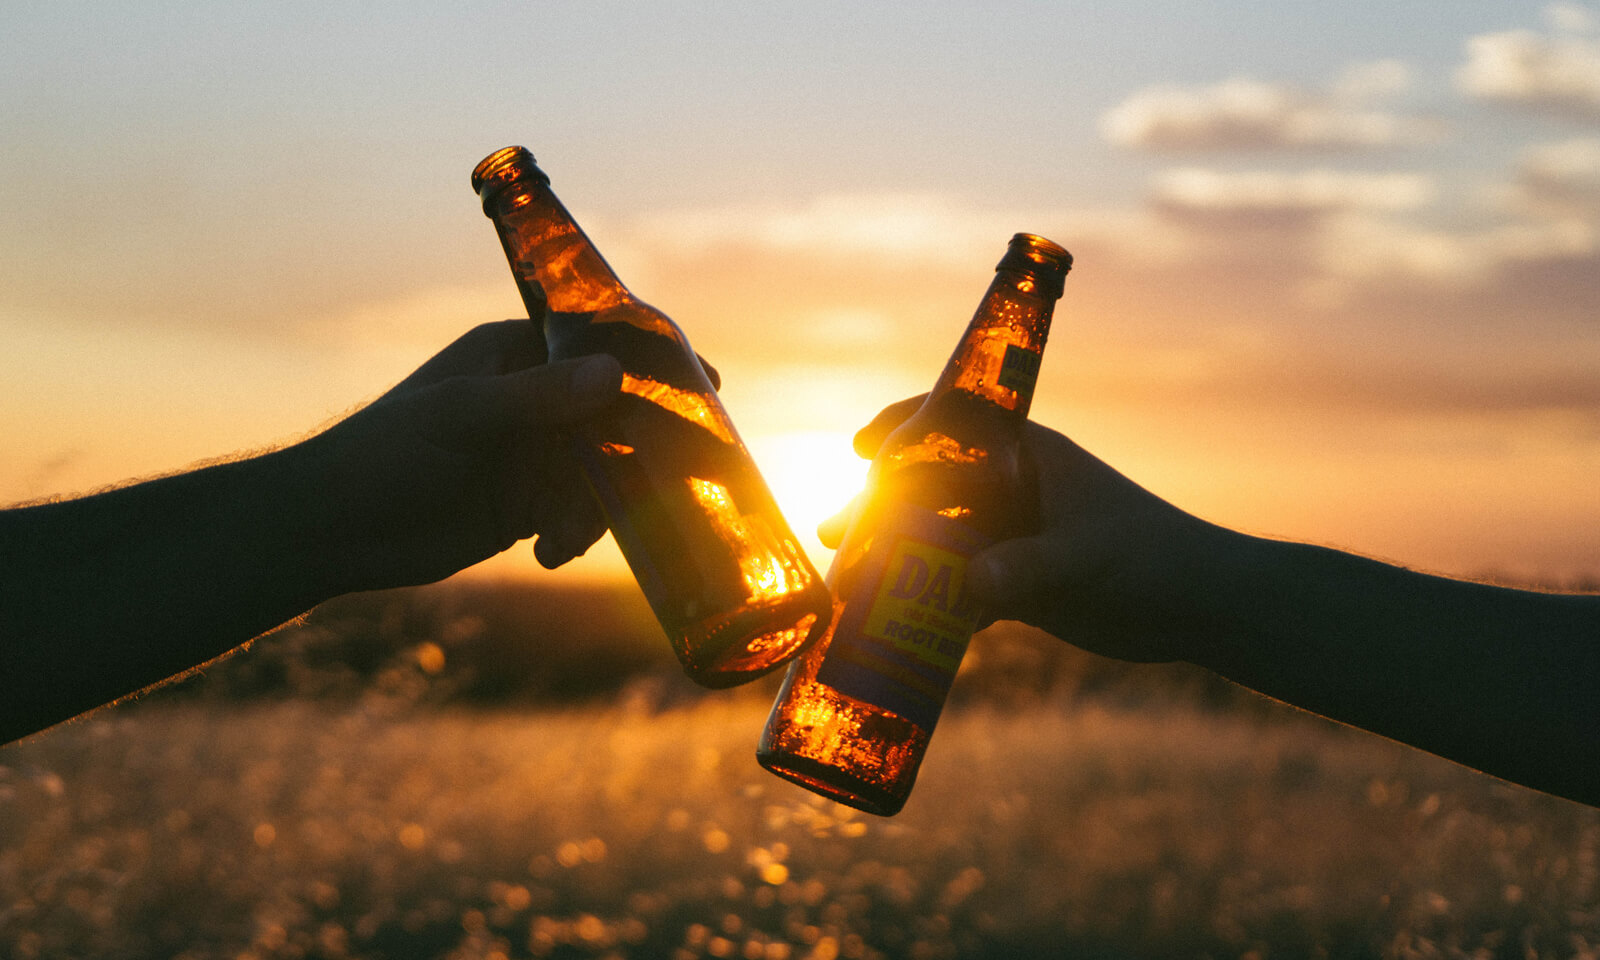 beer bottles clinking together in front of sunset